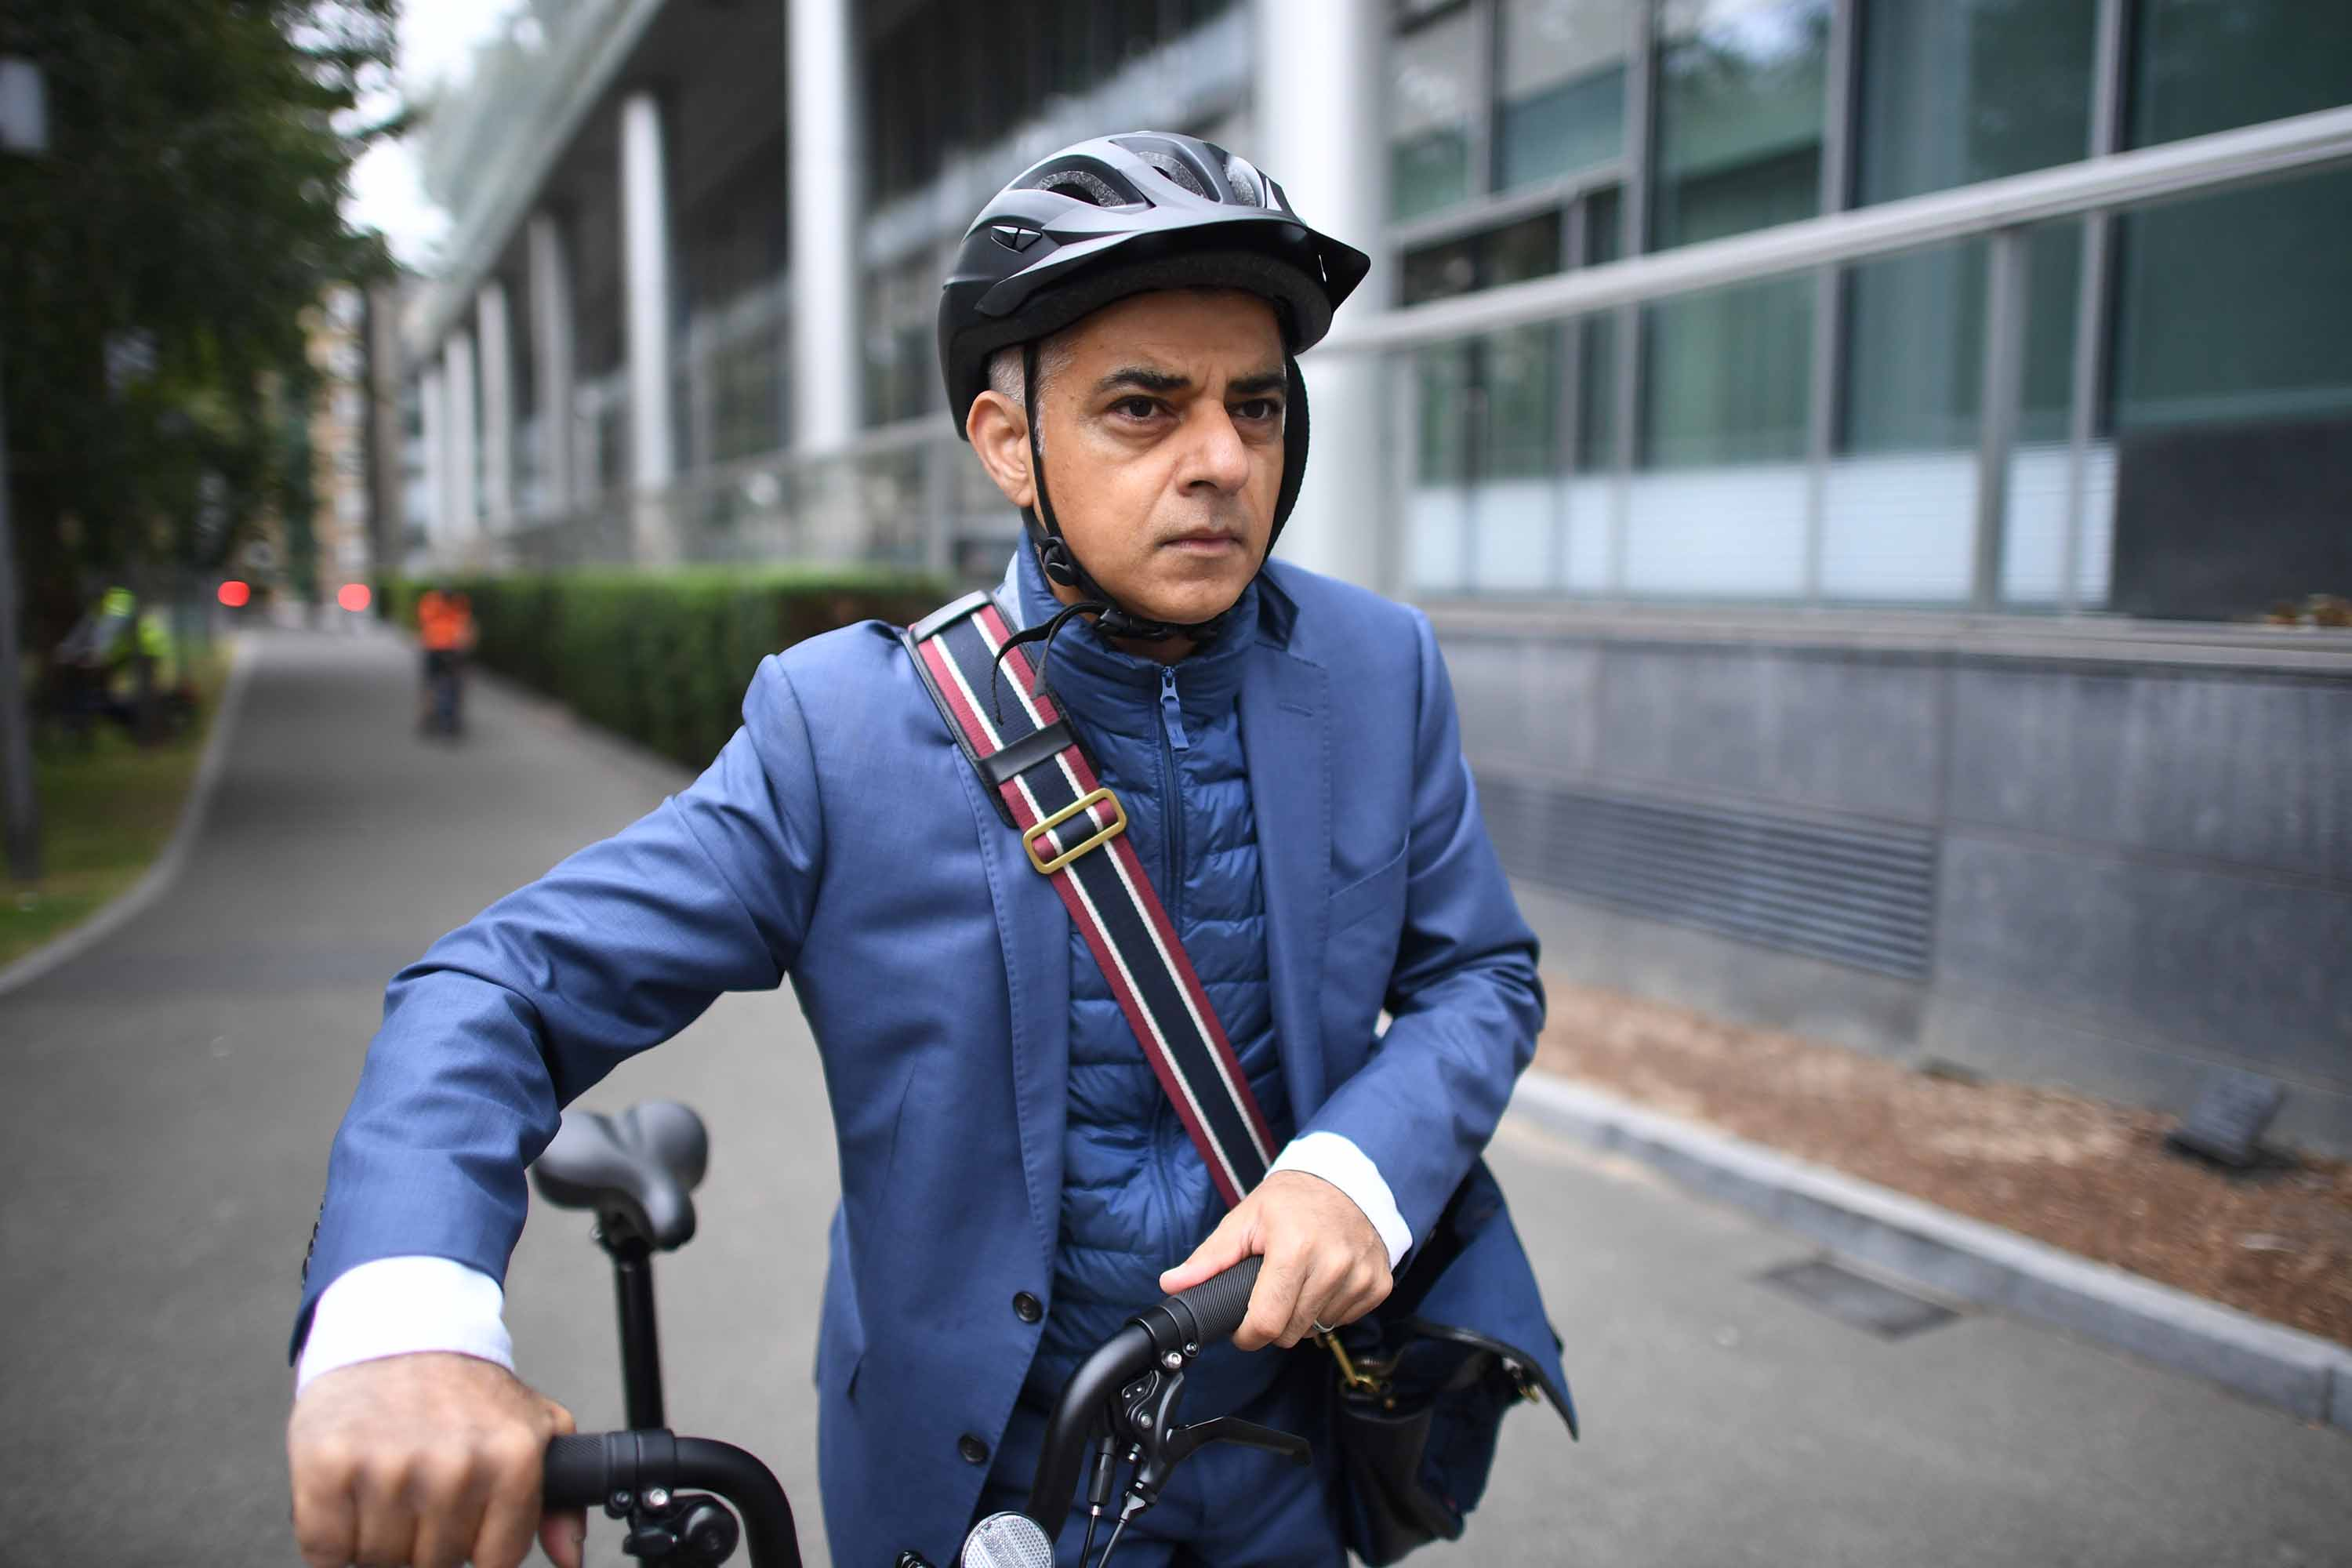 London mayor Sadiq Khan arrives at City Hall in London, after urging ministers to extend regional coronavirus restrictions over the capital, on September 21.